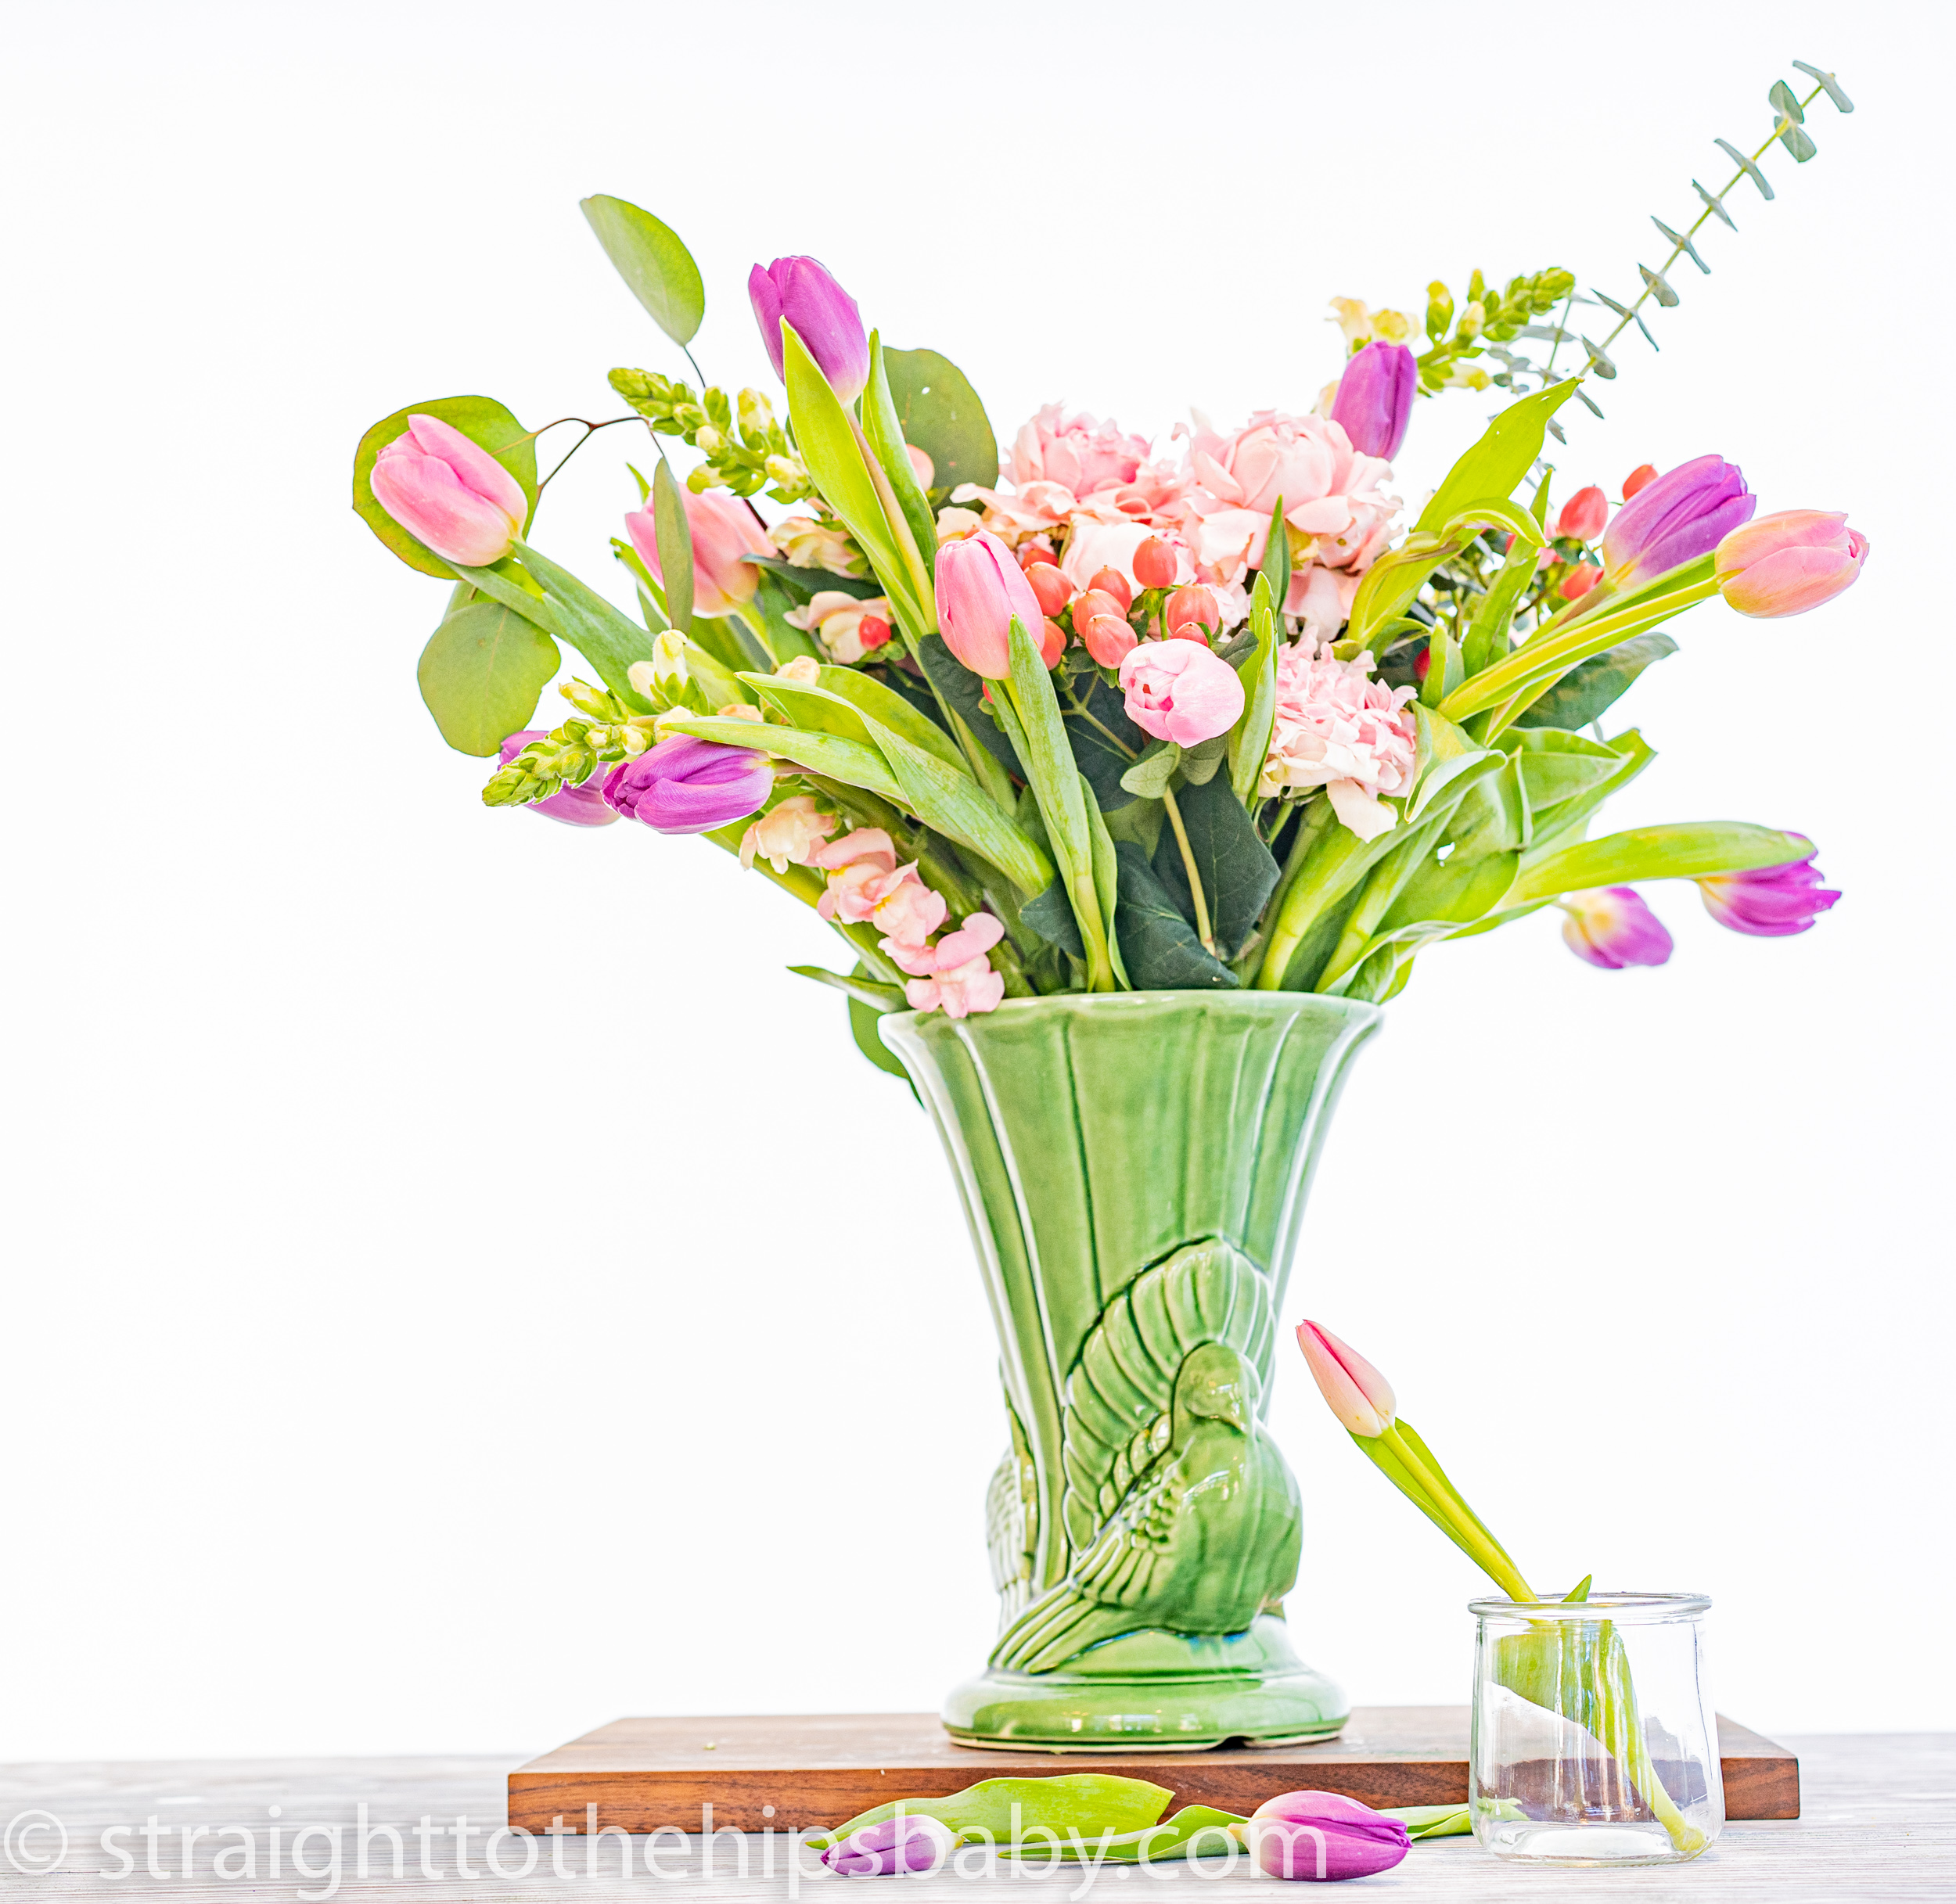 a bouquet of Easter flowers on a white background